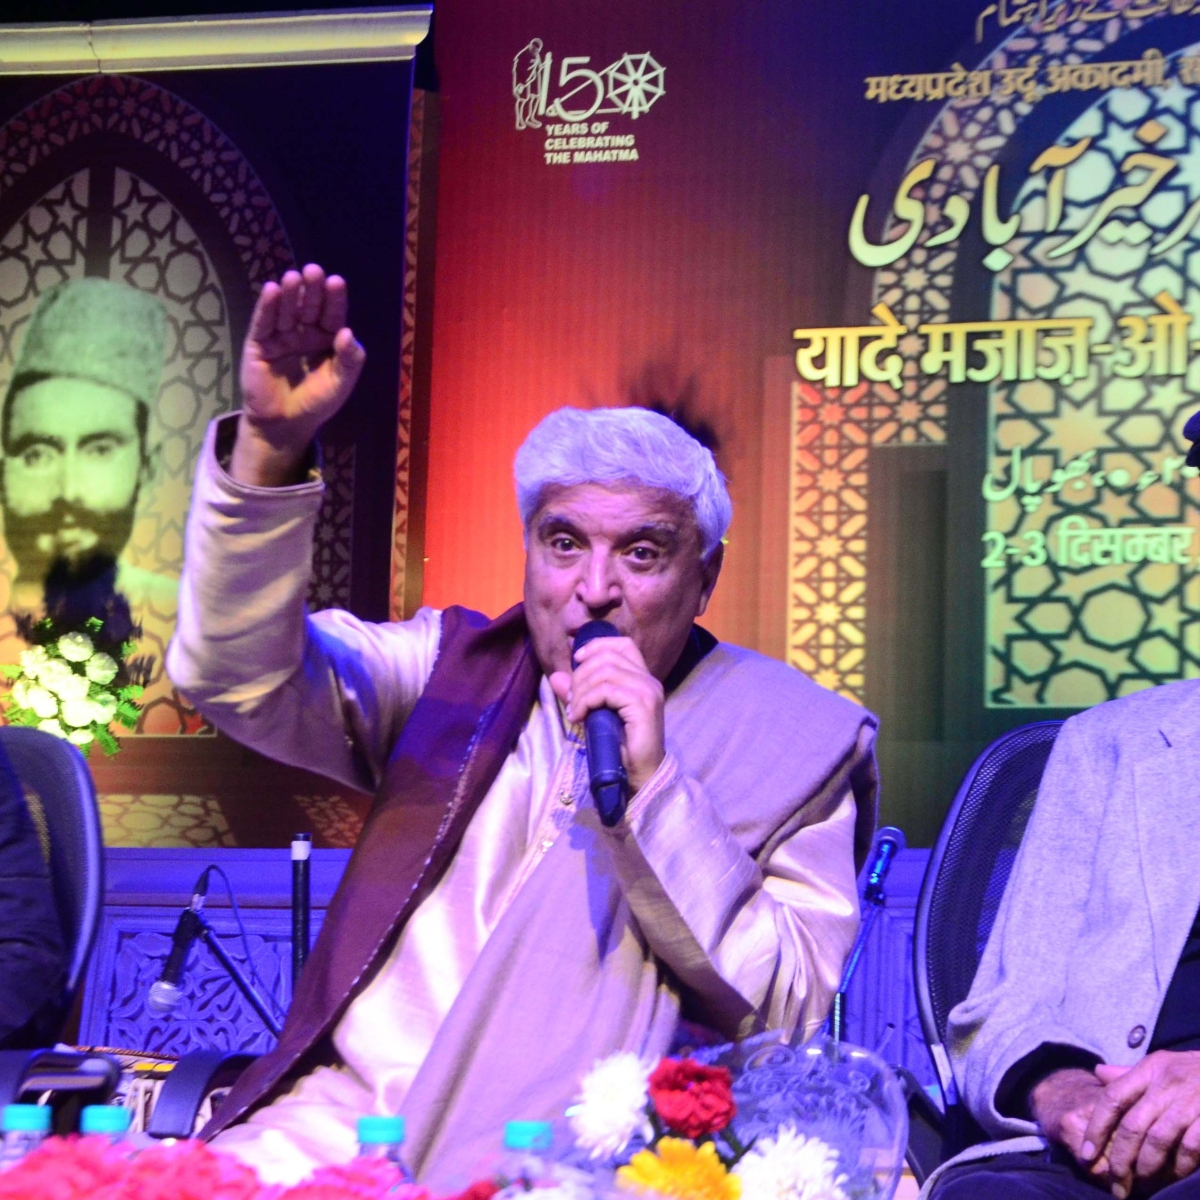 People of Bhopal exceptionally talented, but prefer peace of mind to money & fame: Javed Akhtar